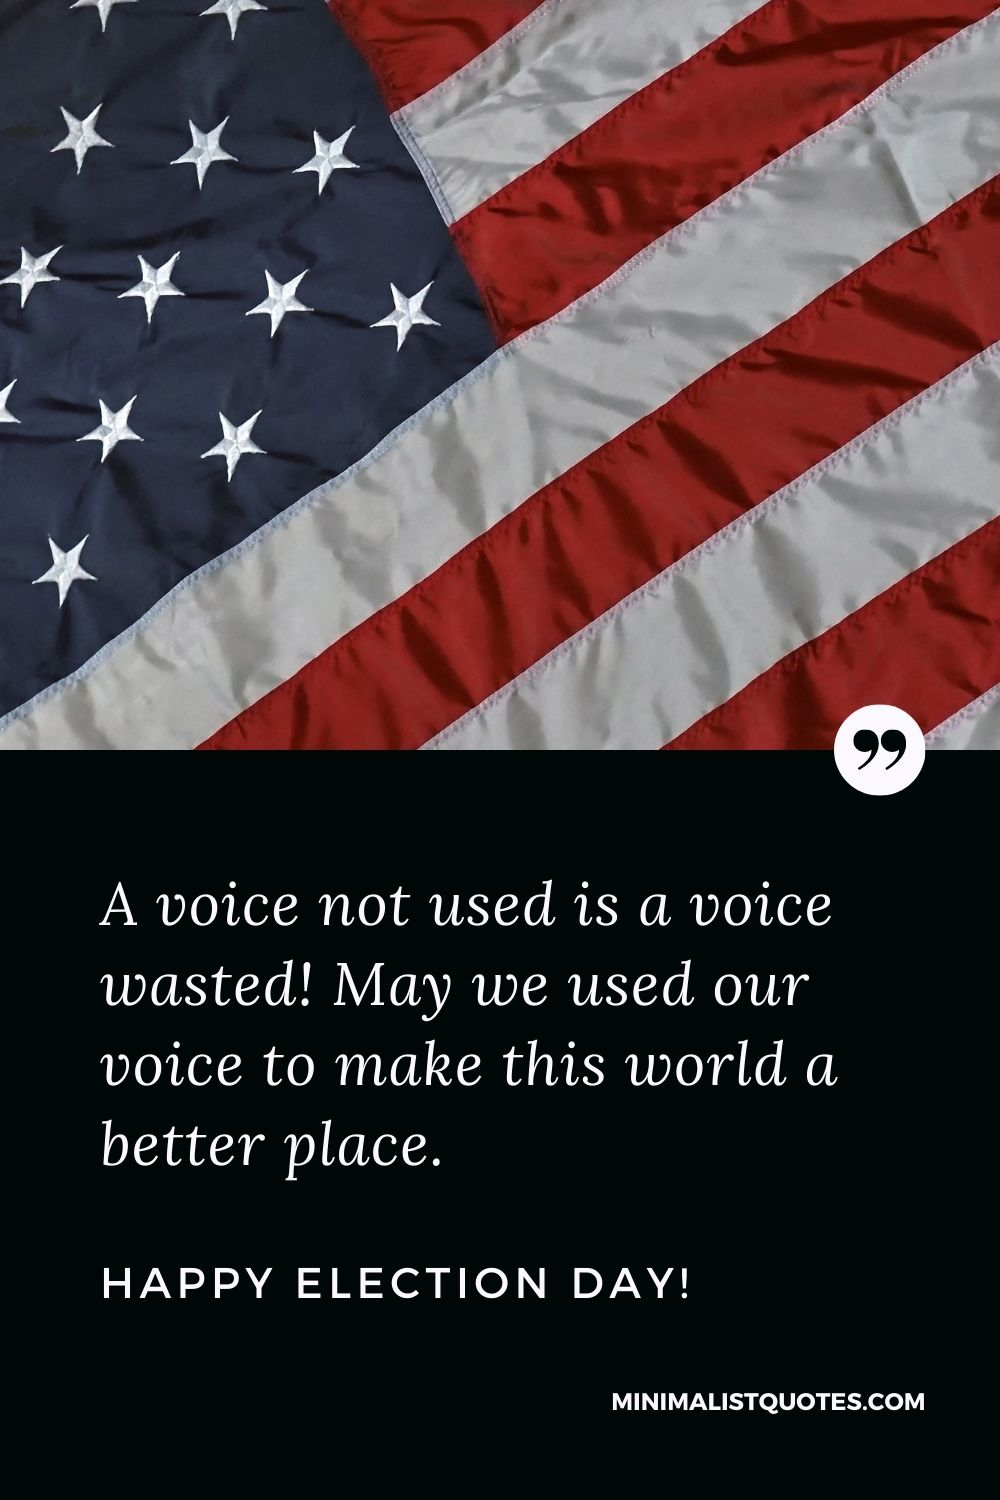 Election Day Quote, Wish & Message With Image: A voice not used is a voice wasted! May we used our voice to make this world a better place. Happy Election Day!